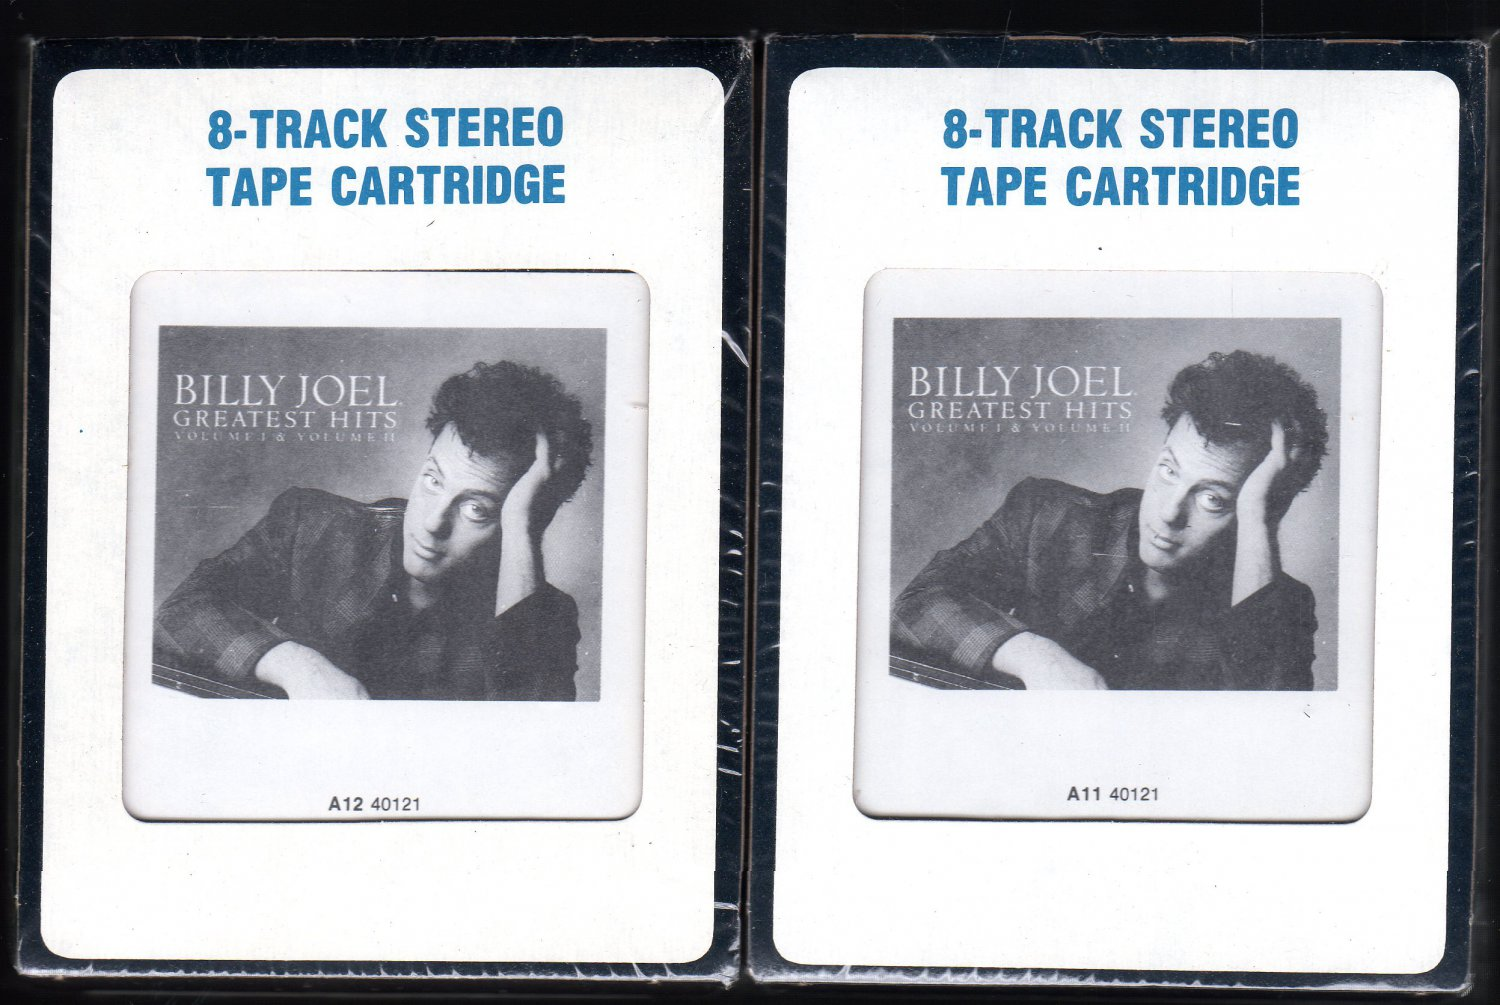 Billy Joel - Greatest Hits Volume 1 & Volume 2 1985 CRC Sealed A32 8-TRACK TAPE